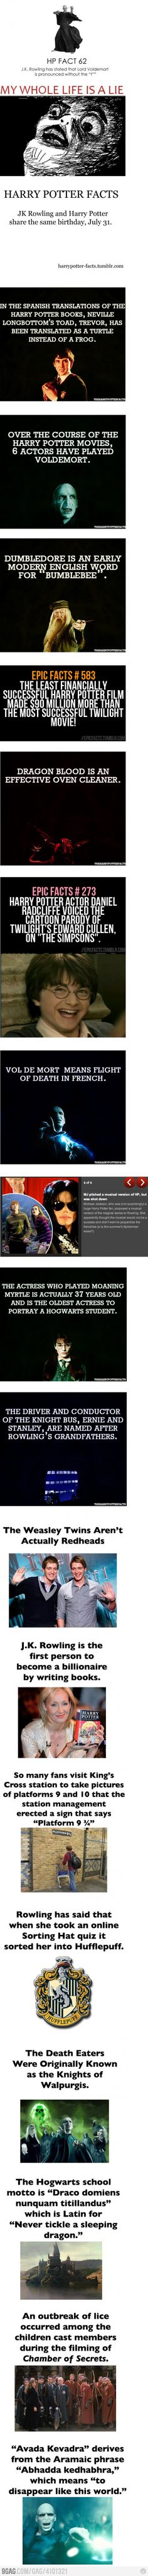 Funny Facts about Harry Potter